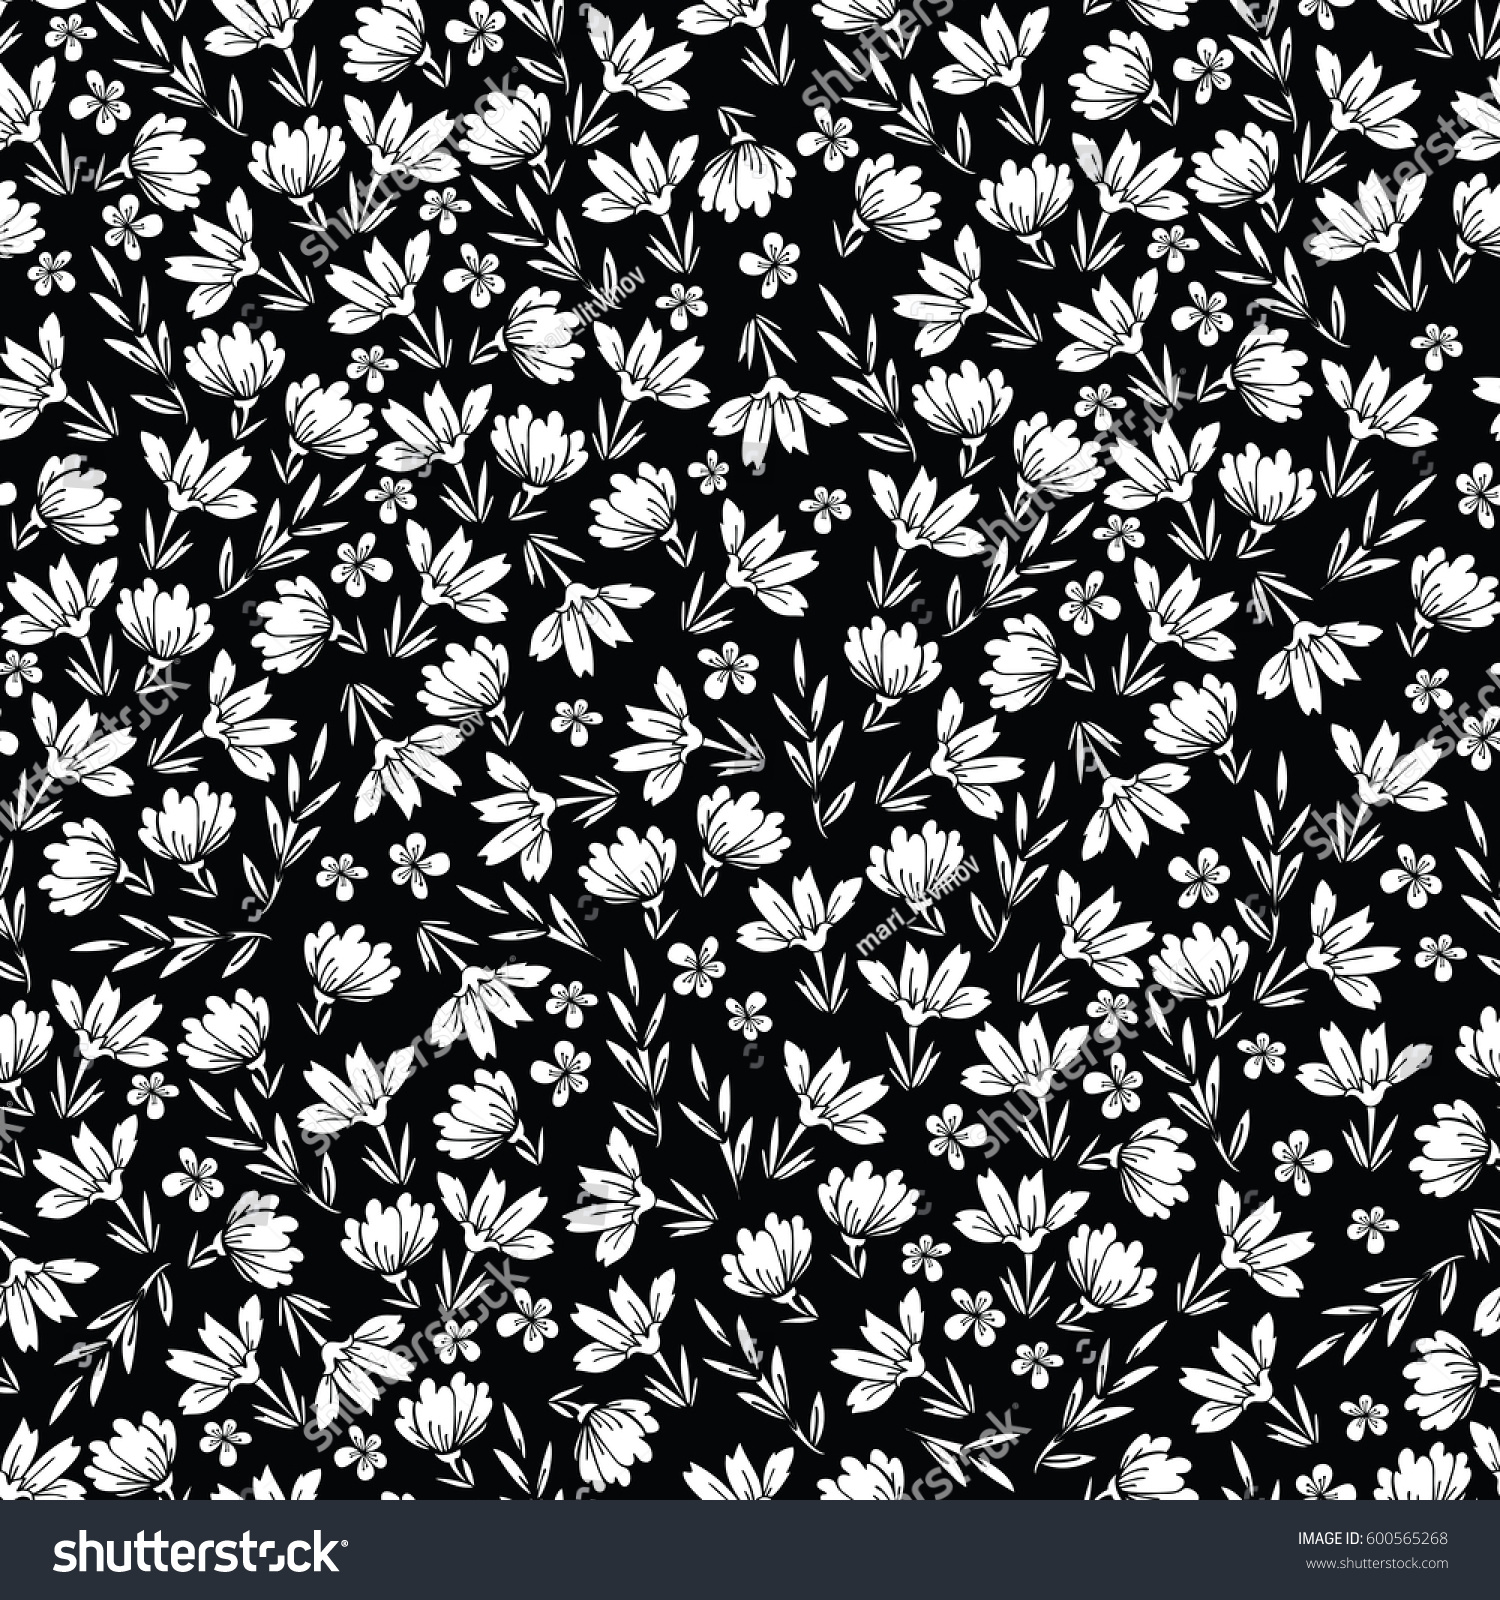 Floral Seamless Pattern Of Small Flowers In White And Black Cute